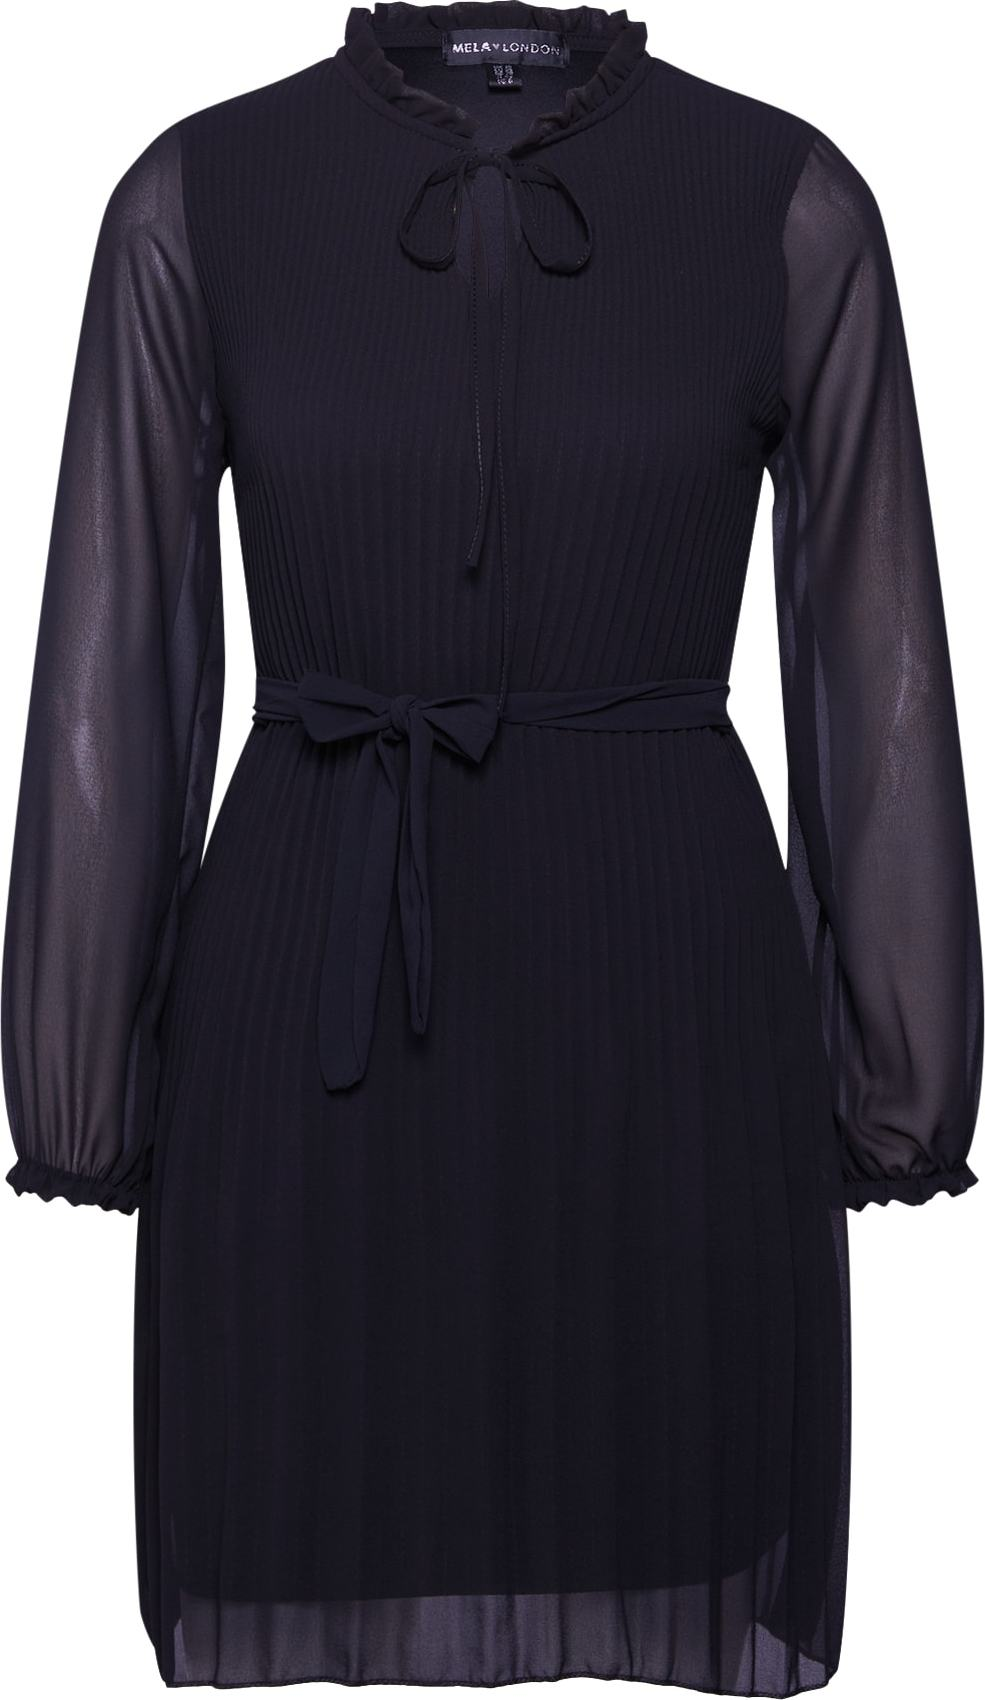 Šaty LONG SLEEVE PLEATED BELTED DRESS černá Mela London